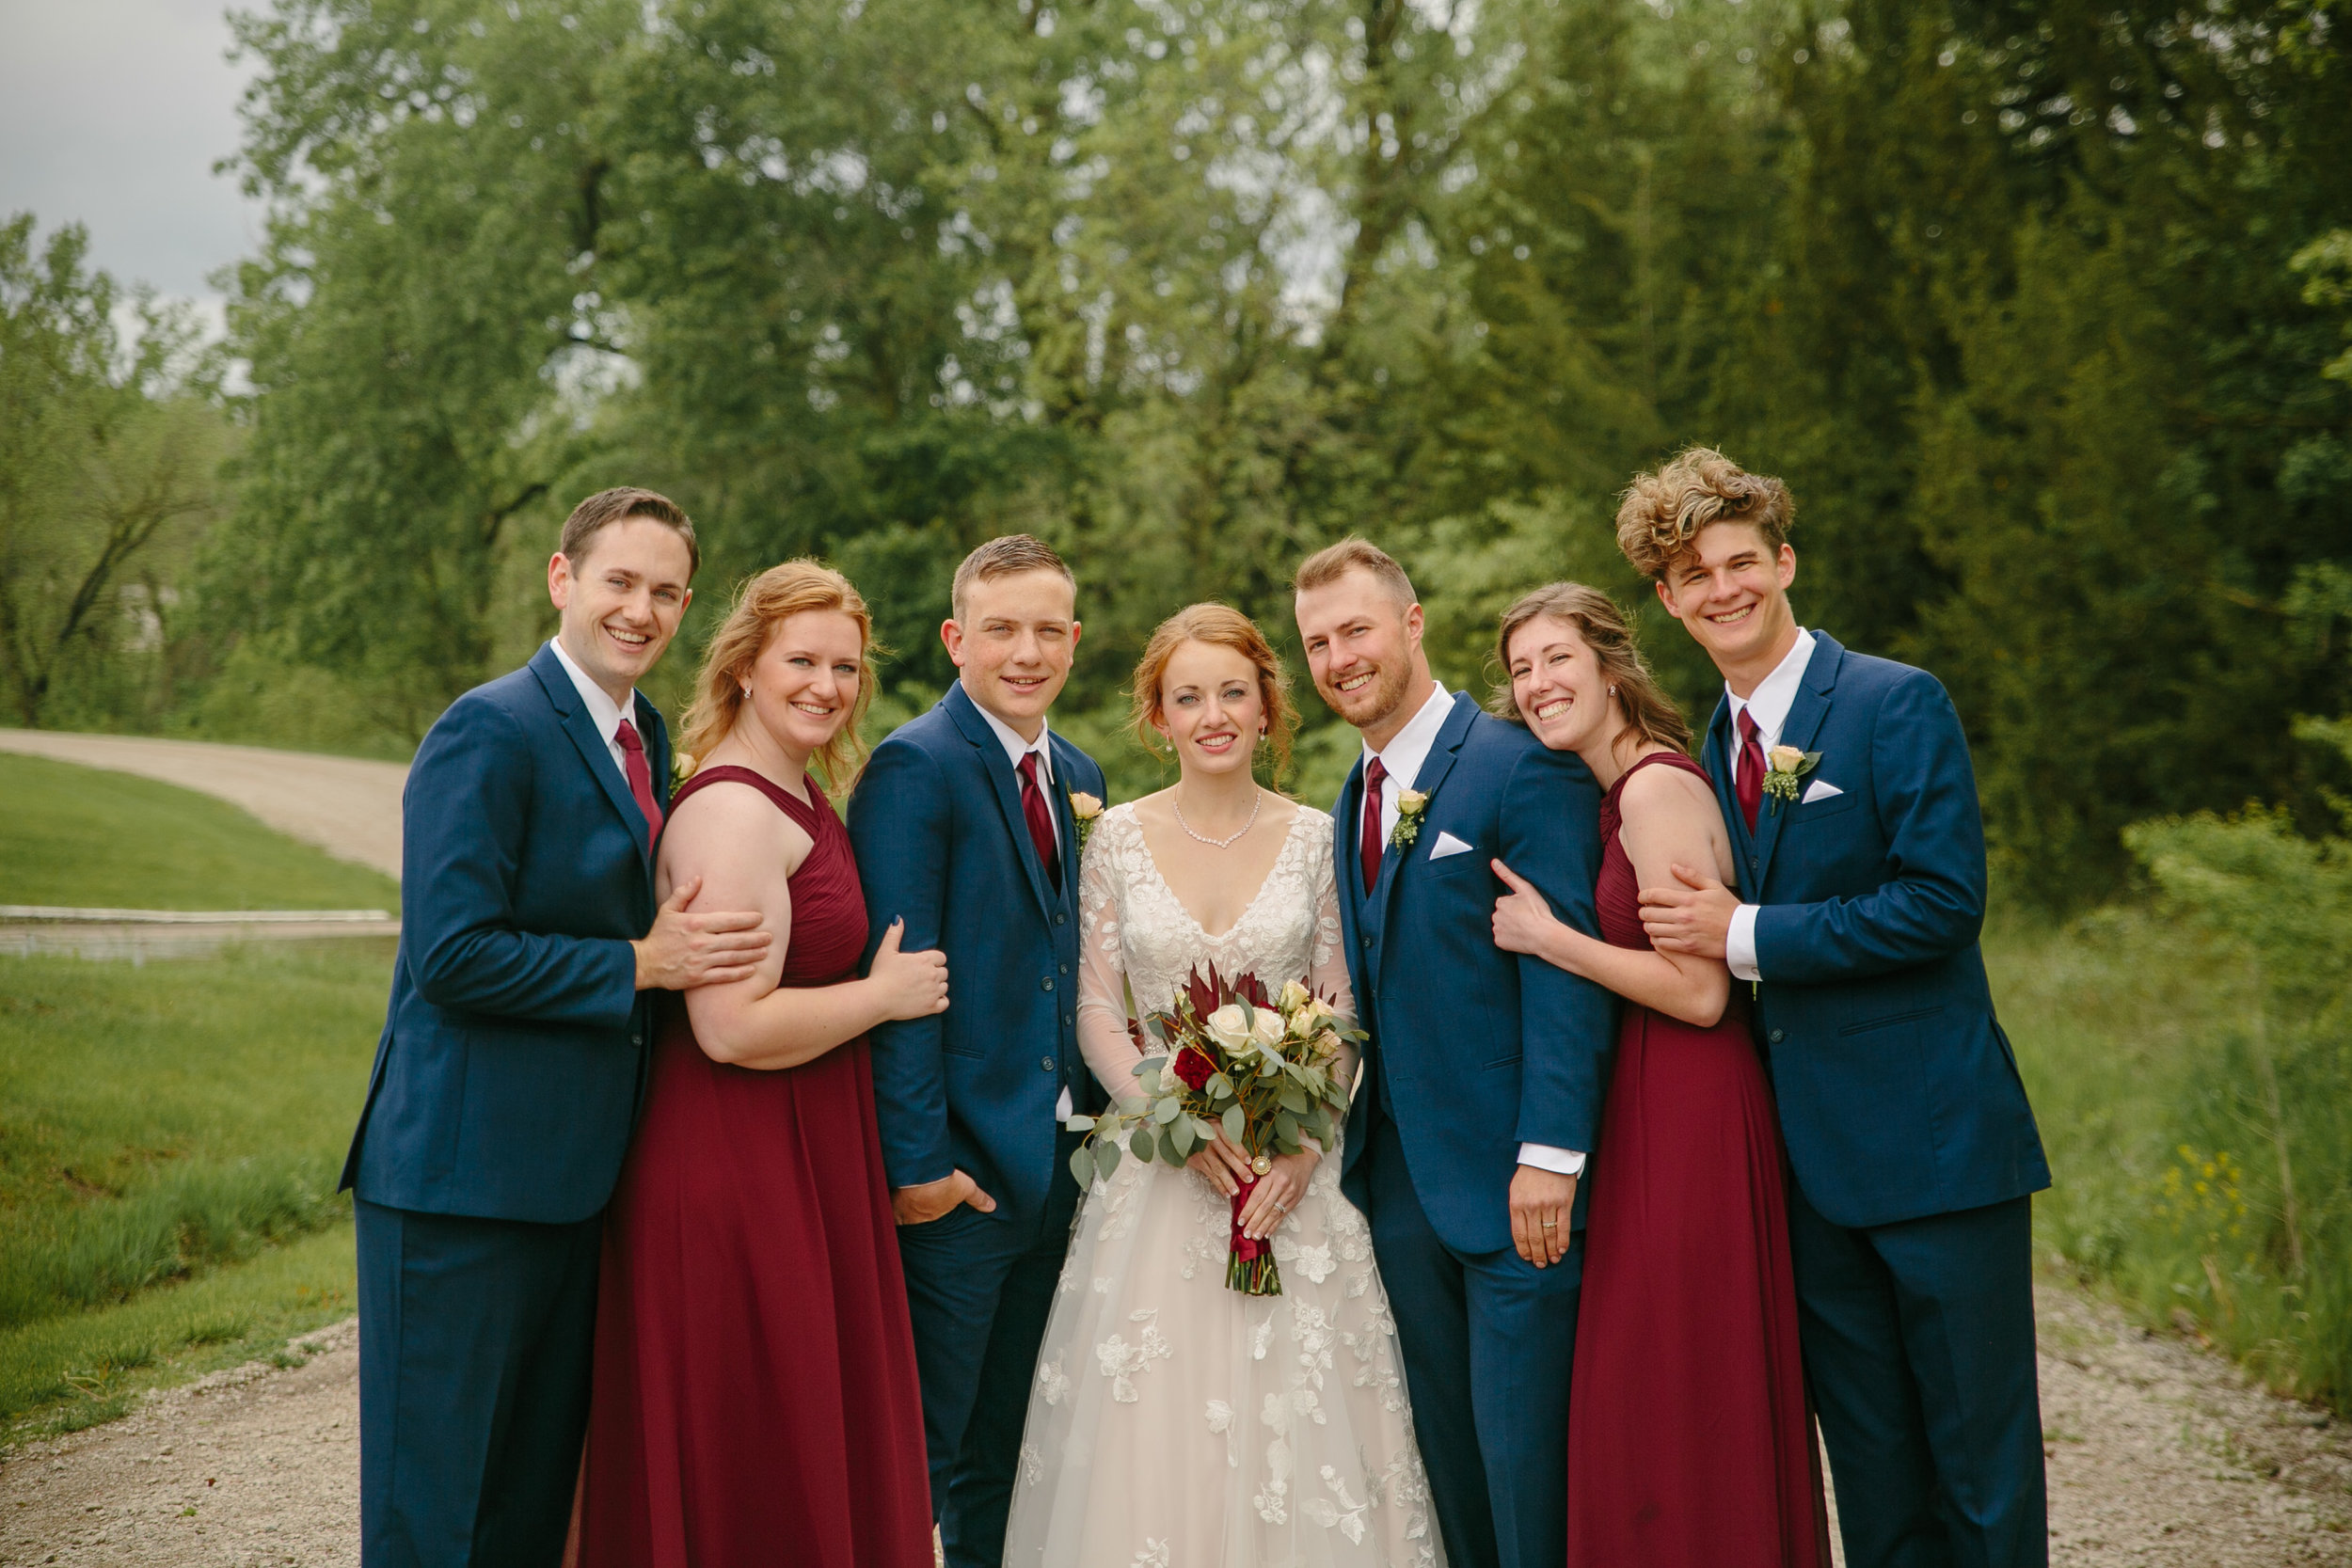 sibling family photos at outdoor wedding